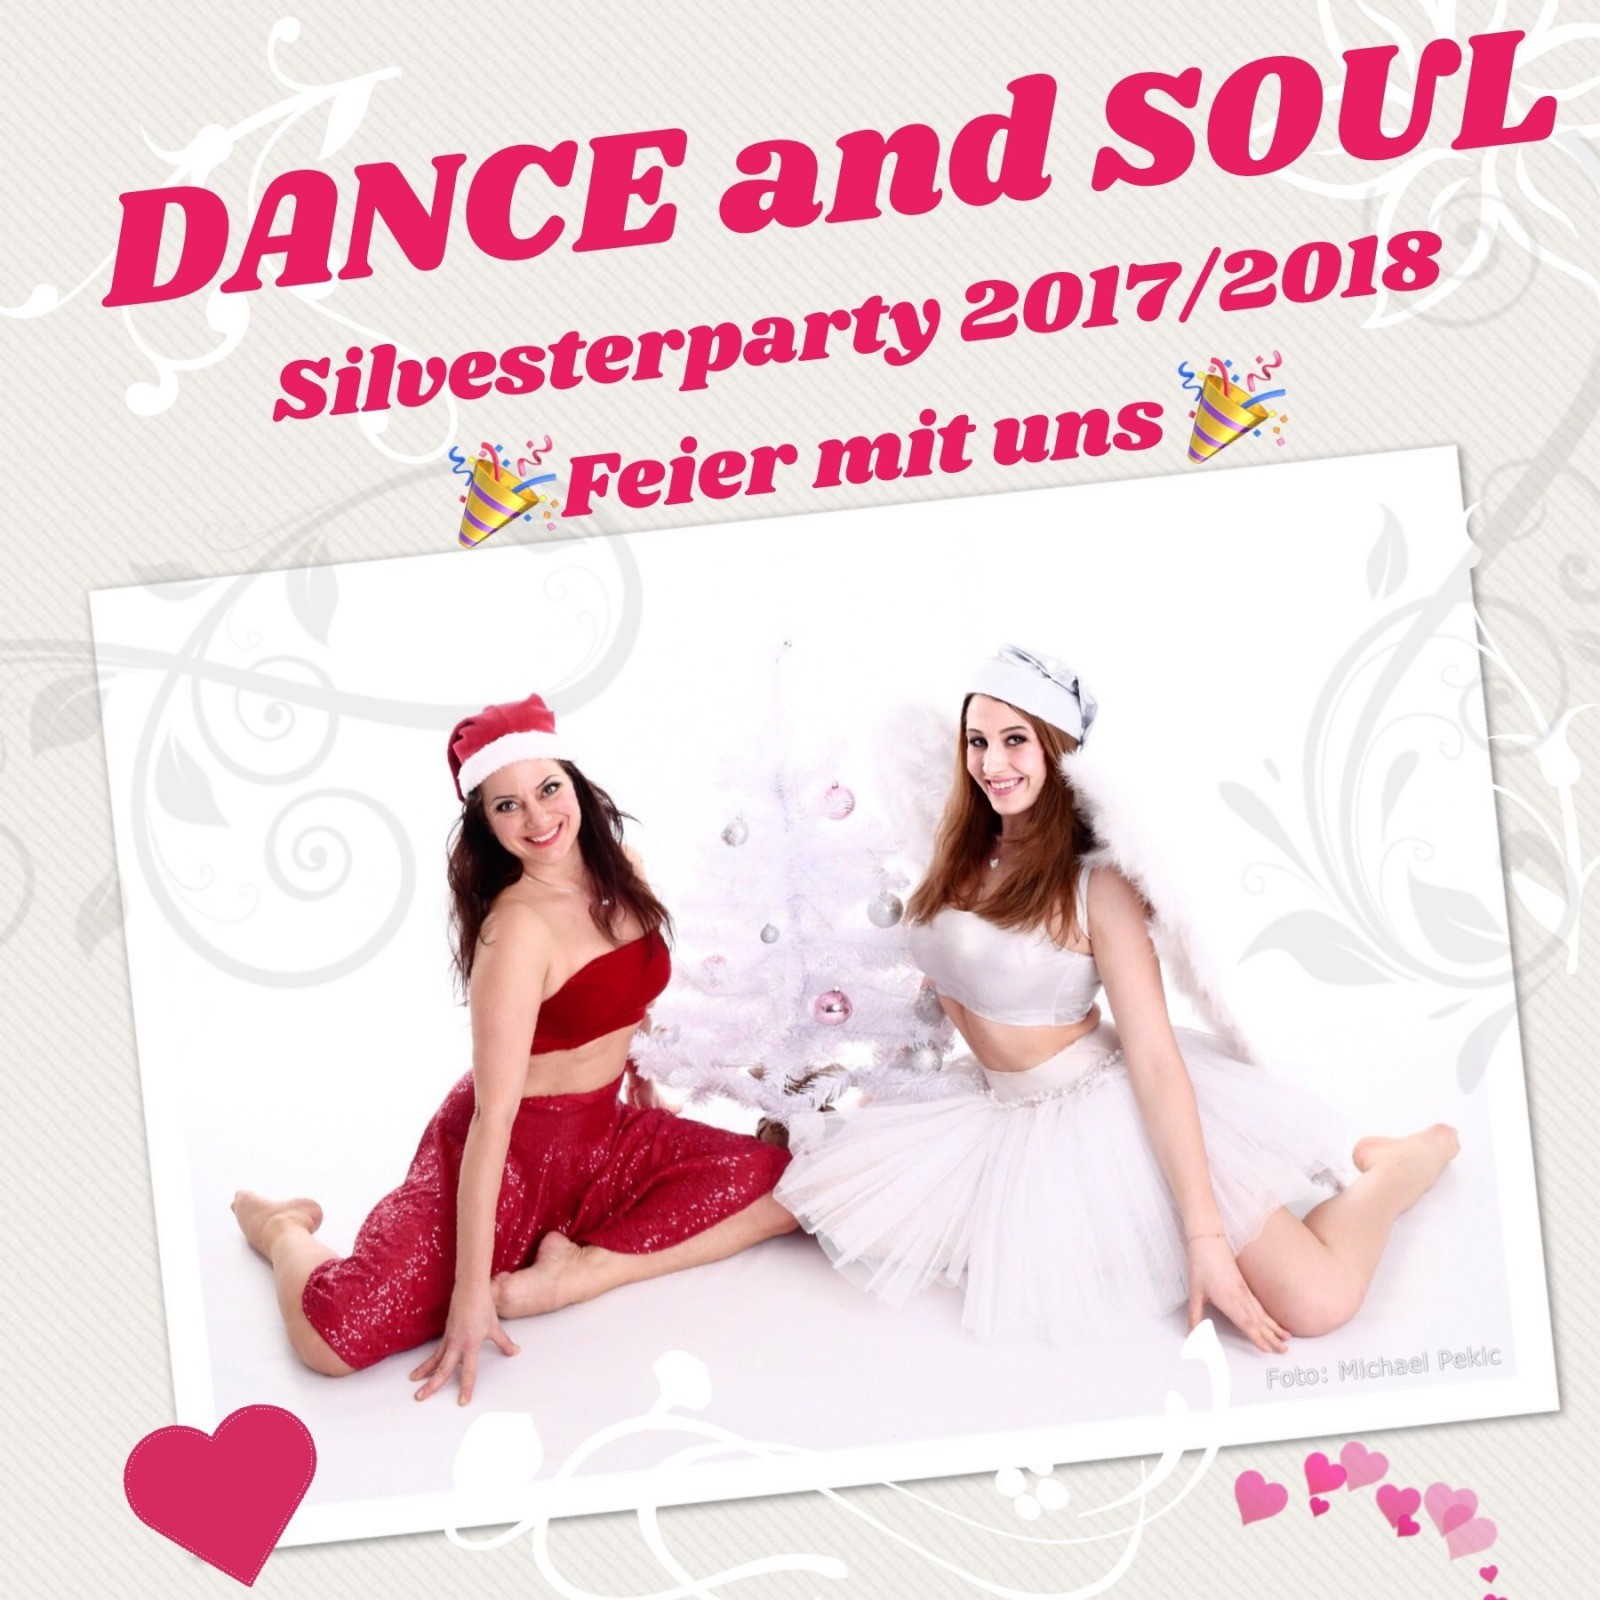 Dance and Soul, Silvesterparty 2017/2018